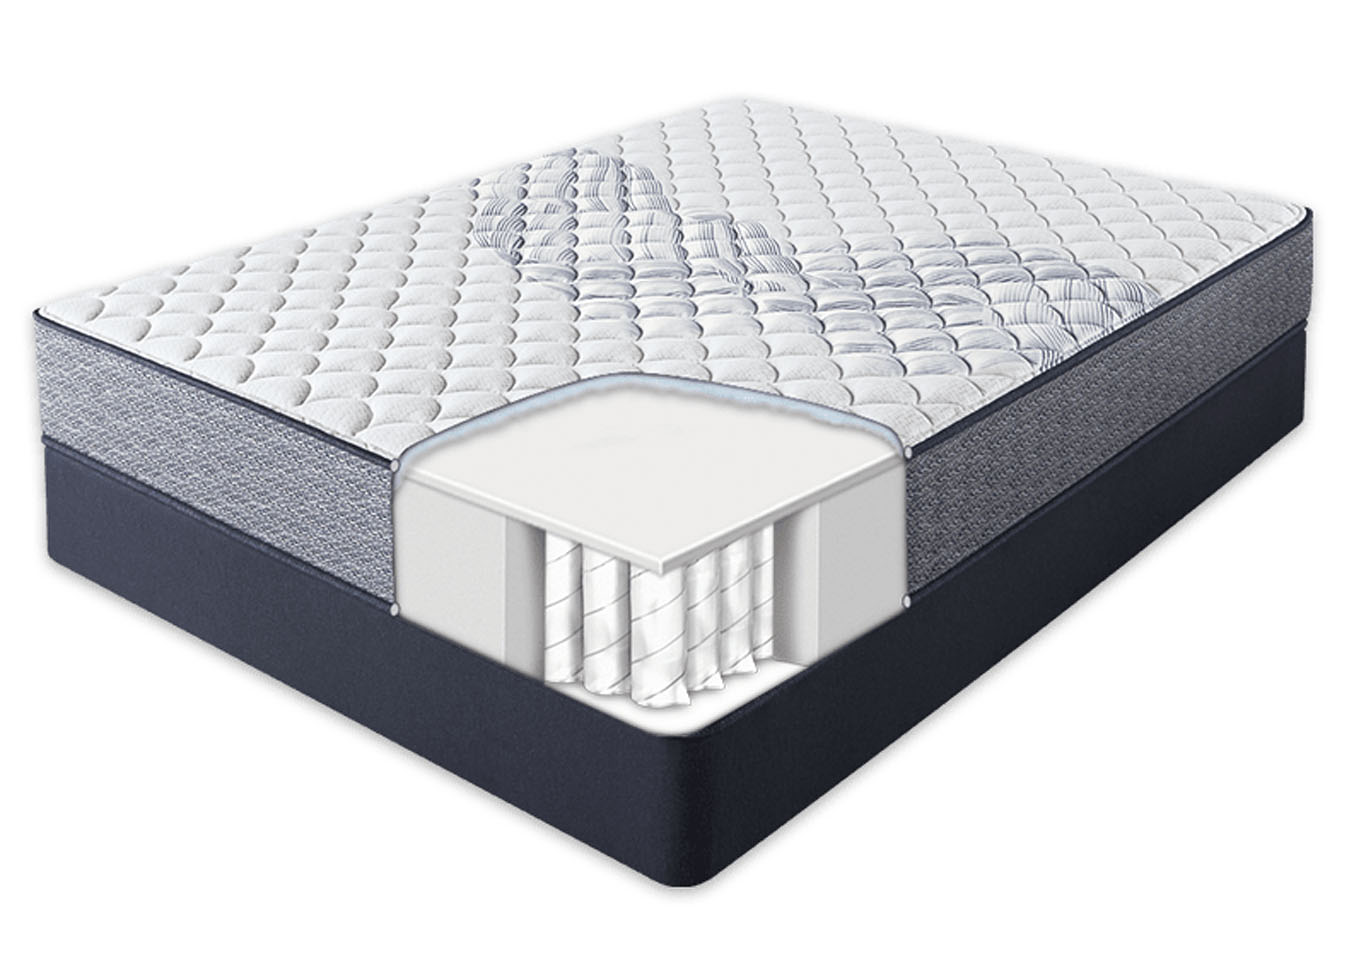 Serta Sleep Retreat Park City Extra Firm Mattress Queen,Instore